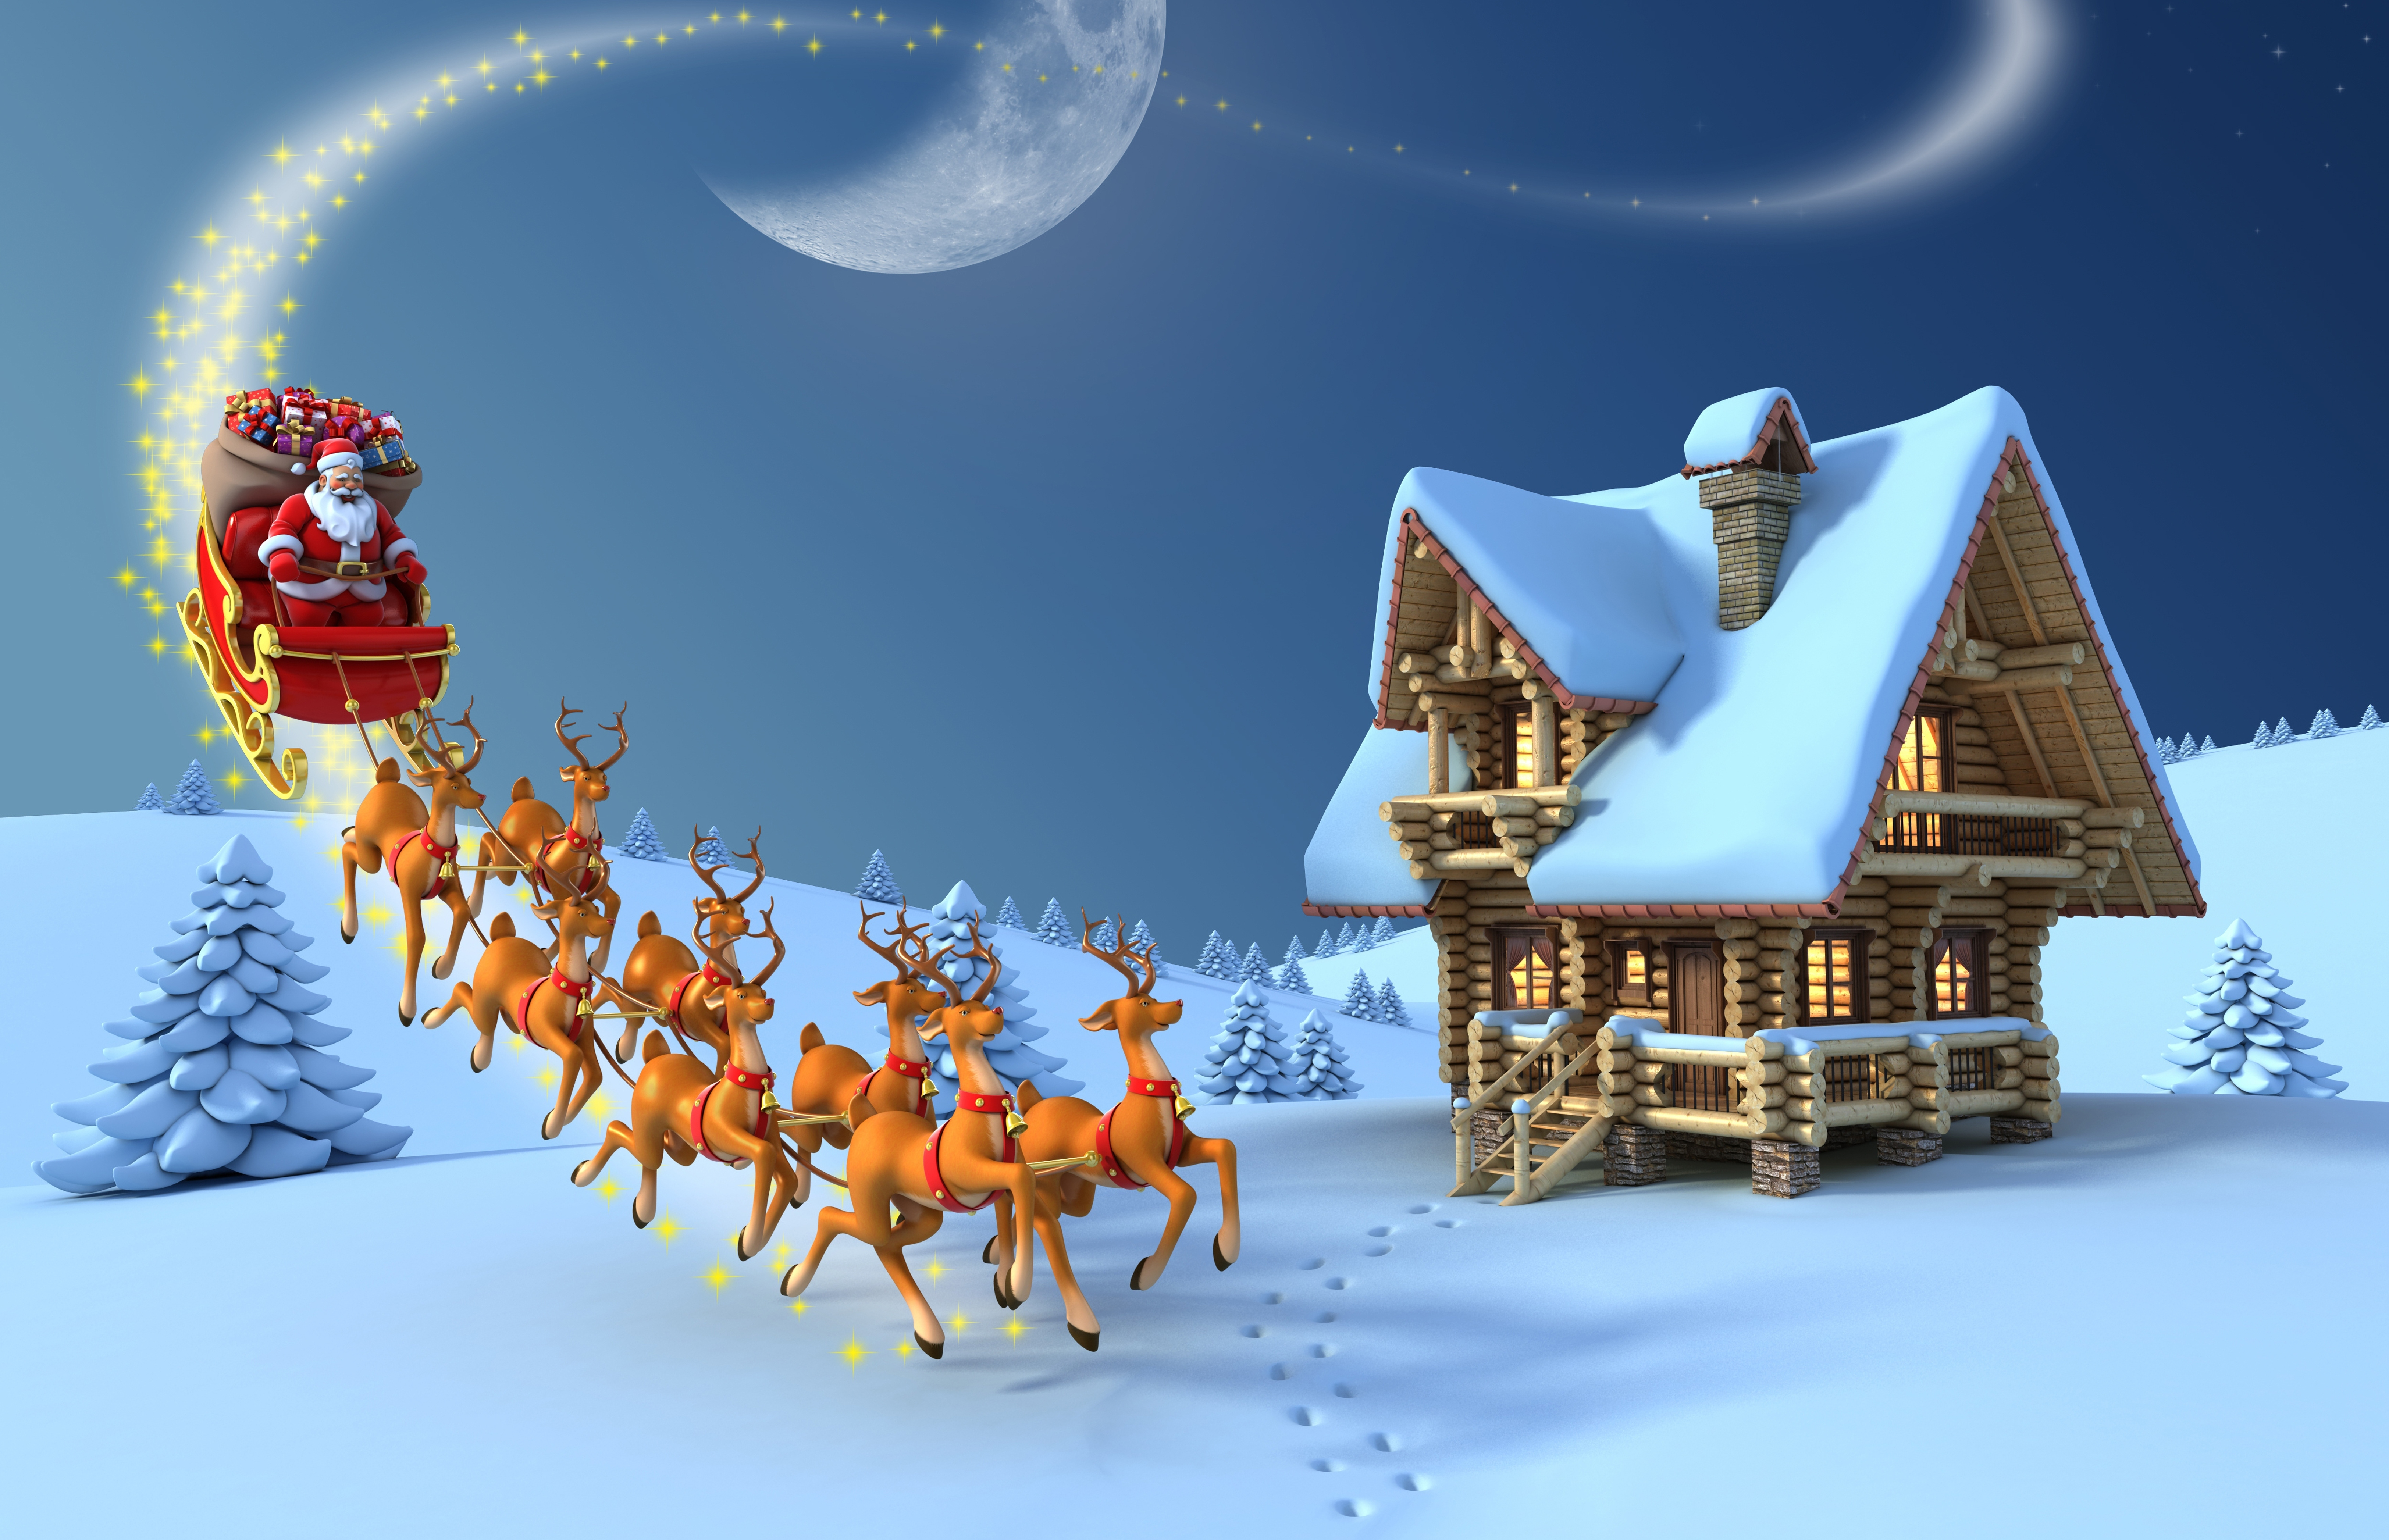 santa claus and his reindeers at north pole